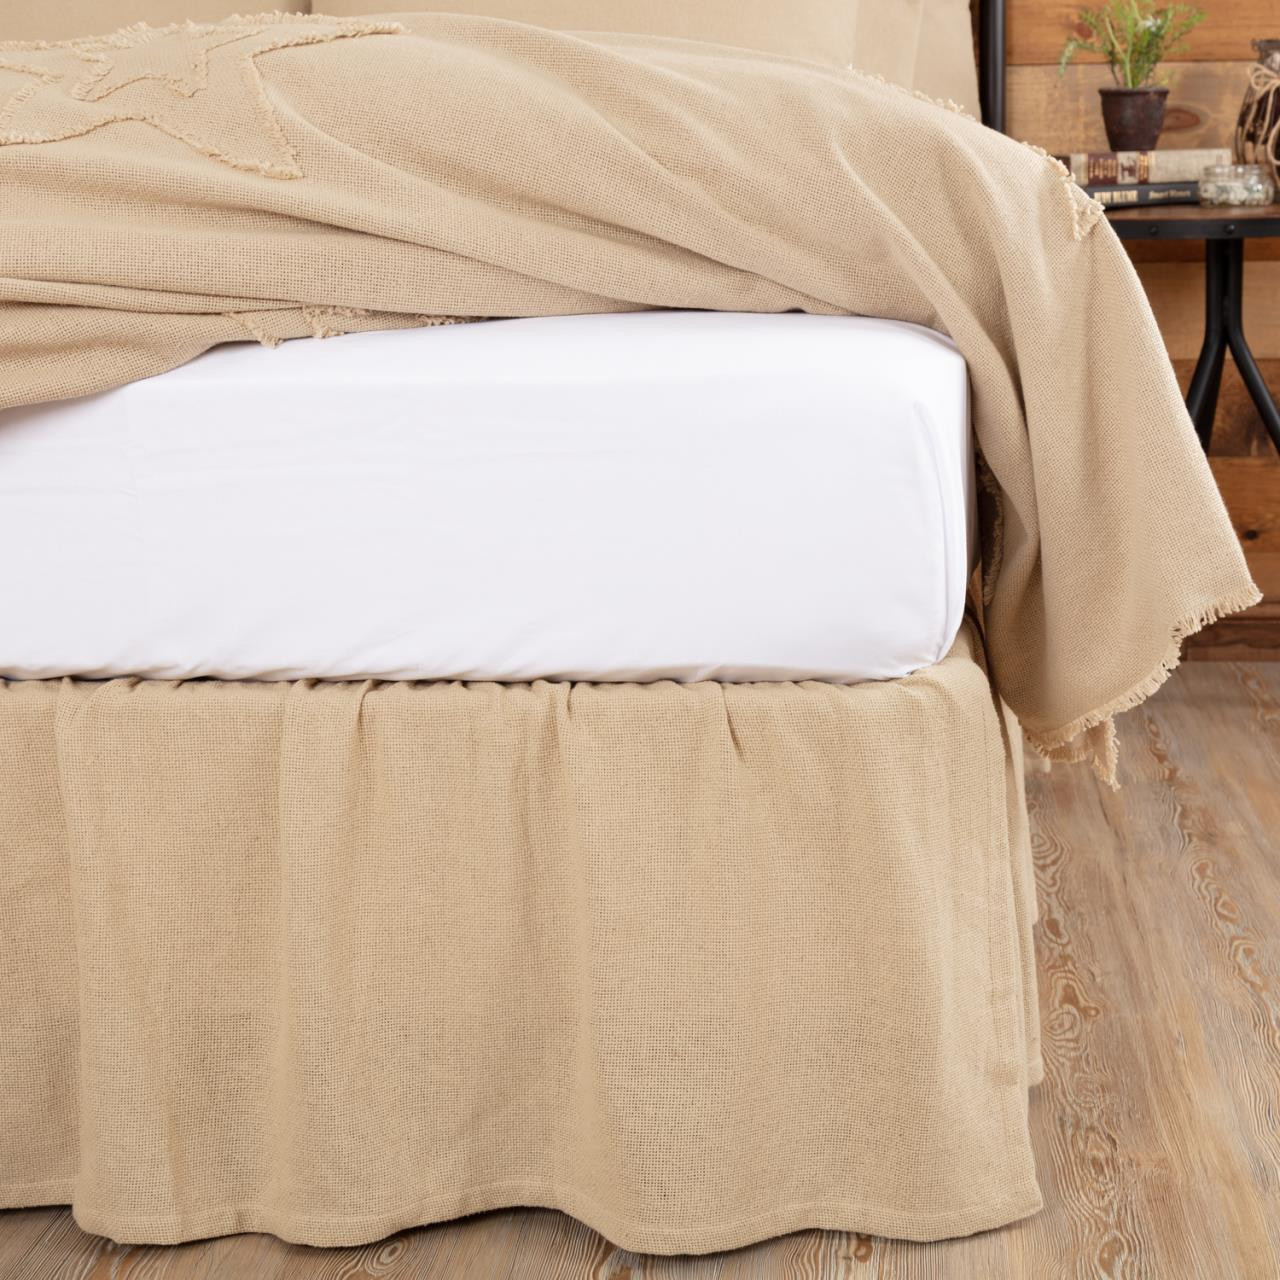 Burlap Vintage Ruffled Bed Skirt By Vhc Brands Paul S Home Fashions